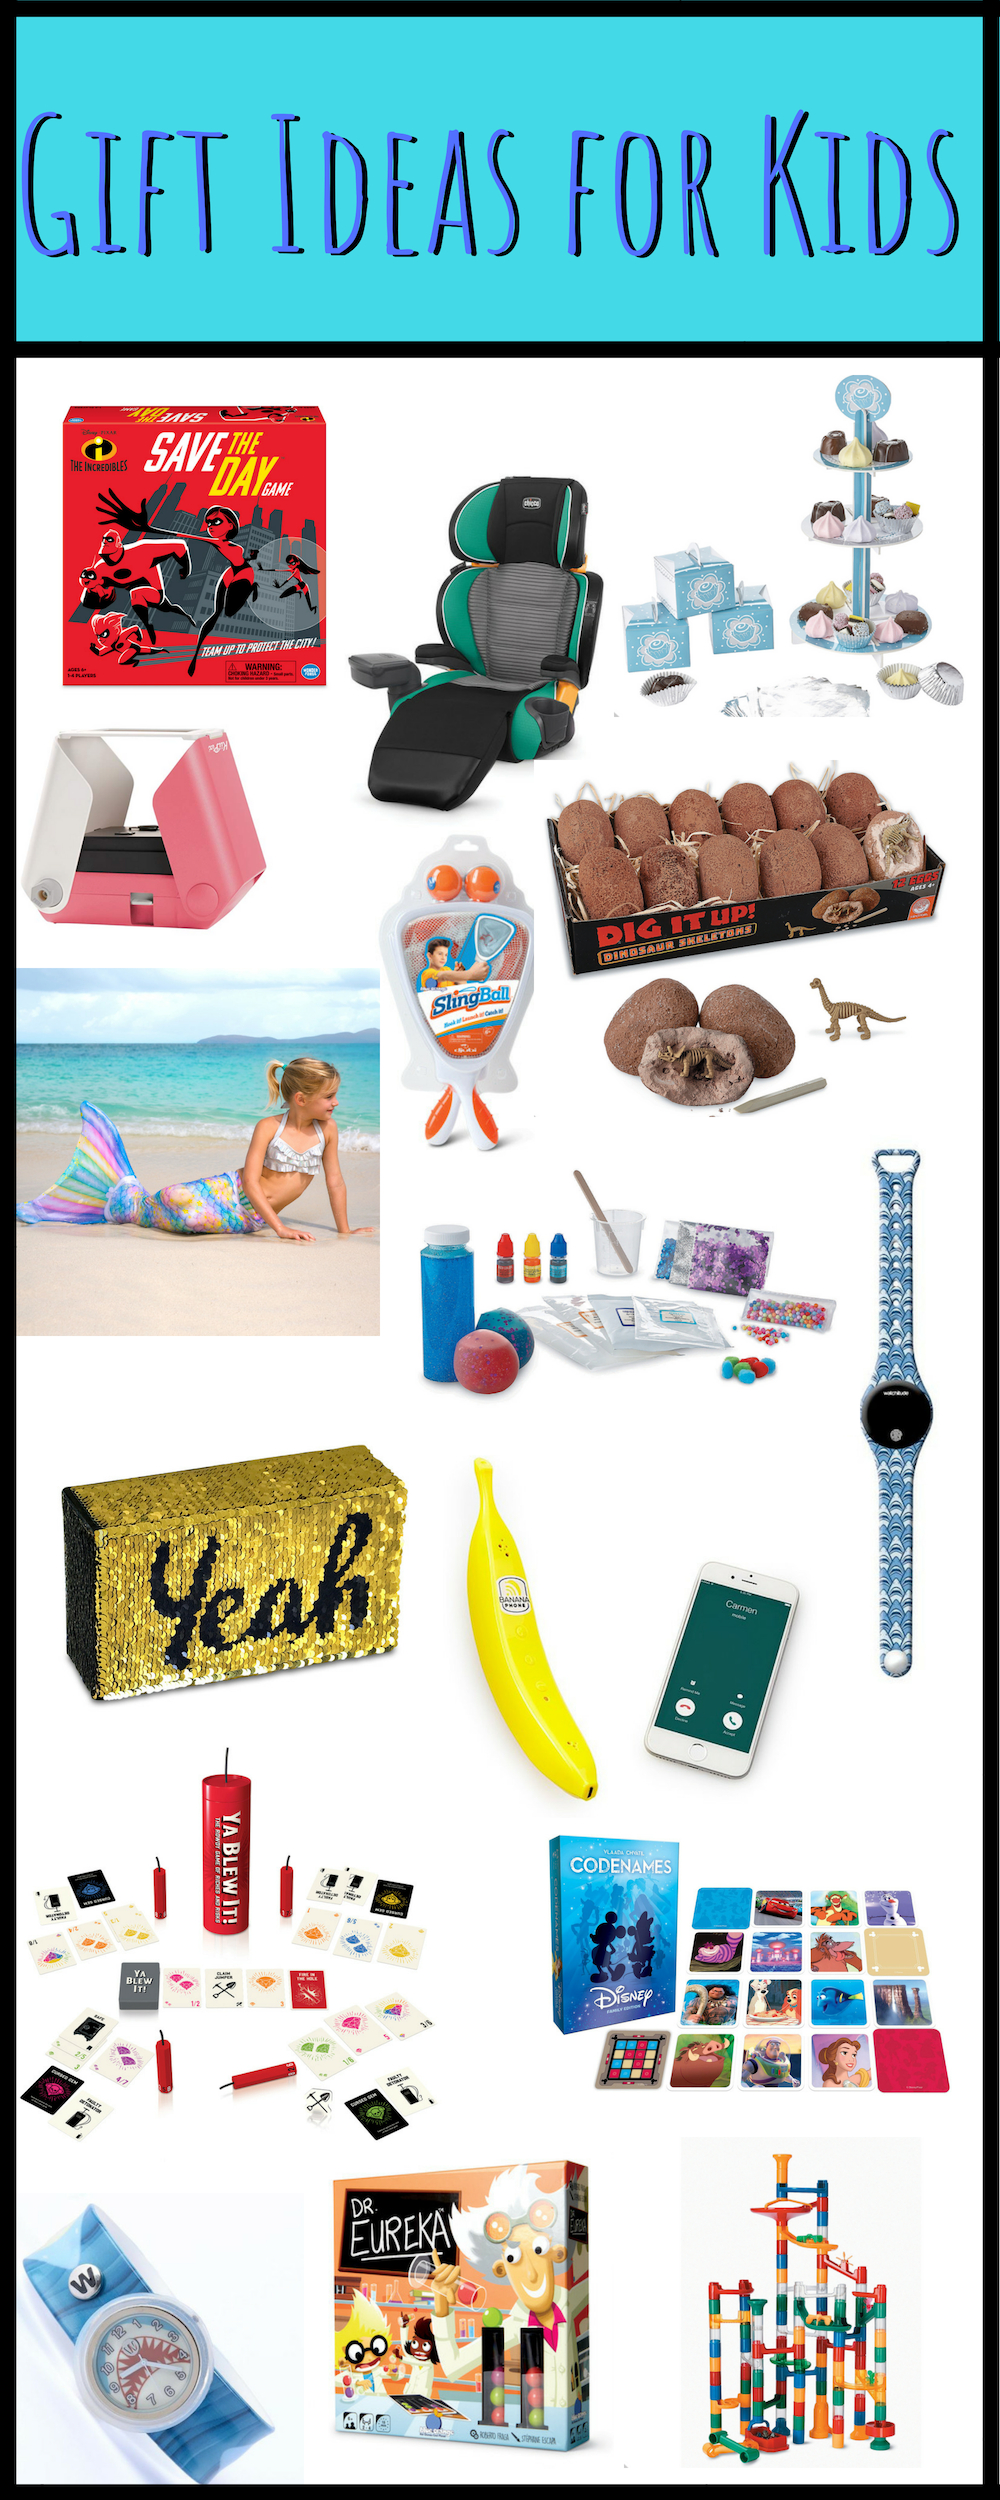 Gift Ideas for Kids-Holiday Gift Guide. Gift Ideas for Teenage Girls, Teenage Boys, Toddlers, Tweens, Babies and more!